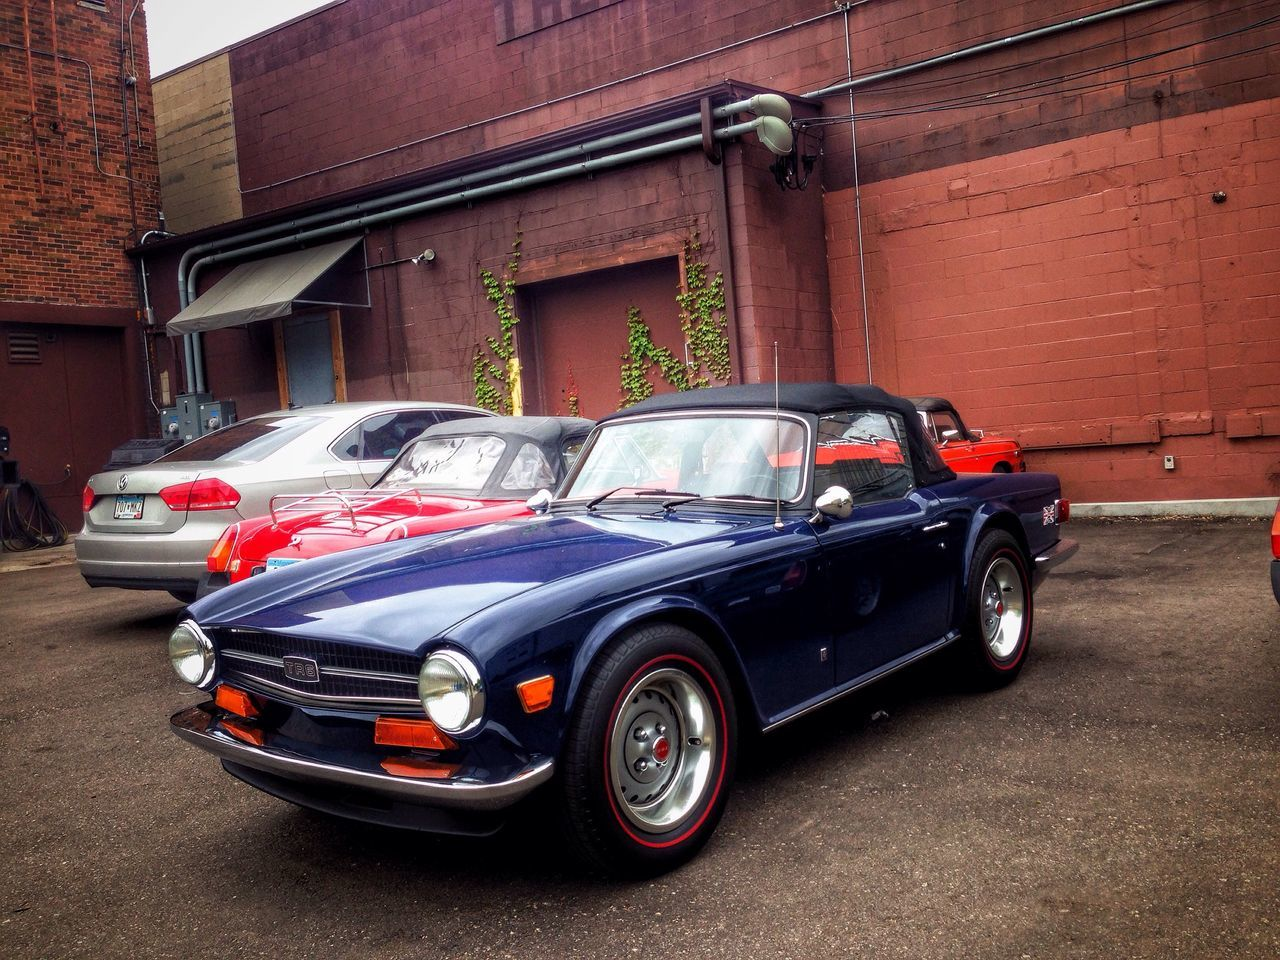 Triumph TR6 Classic British Cars Classic European Cars Enjoying Life Minneapolis Minnesota Bancroft Urban Landscape Cityscapes Afternoon Blues Urban Photography Urbanscape Urbanphotography Urban Lifestyle